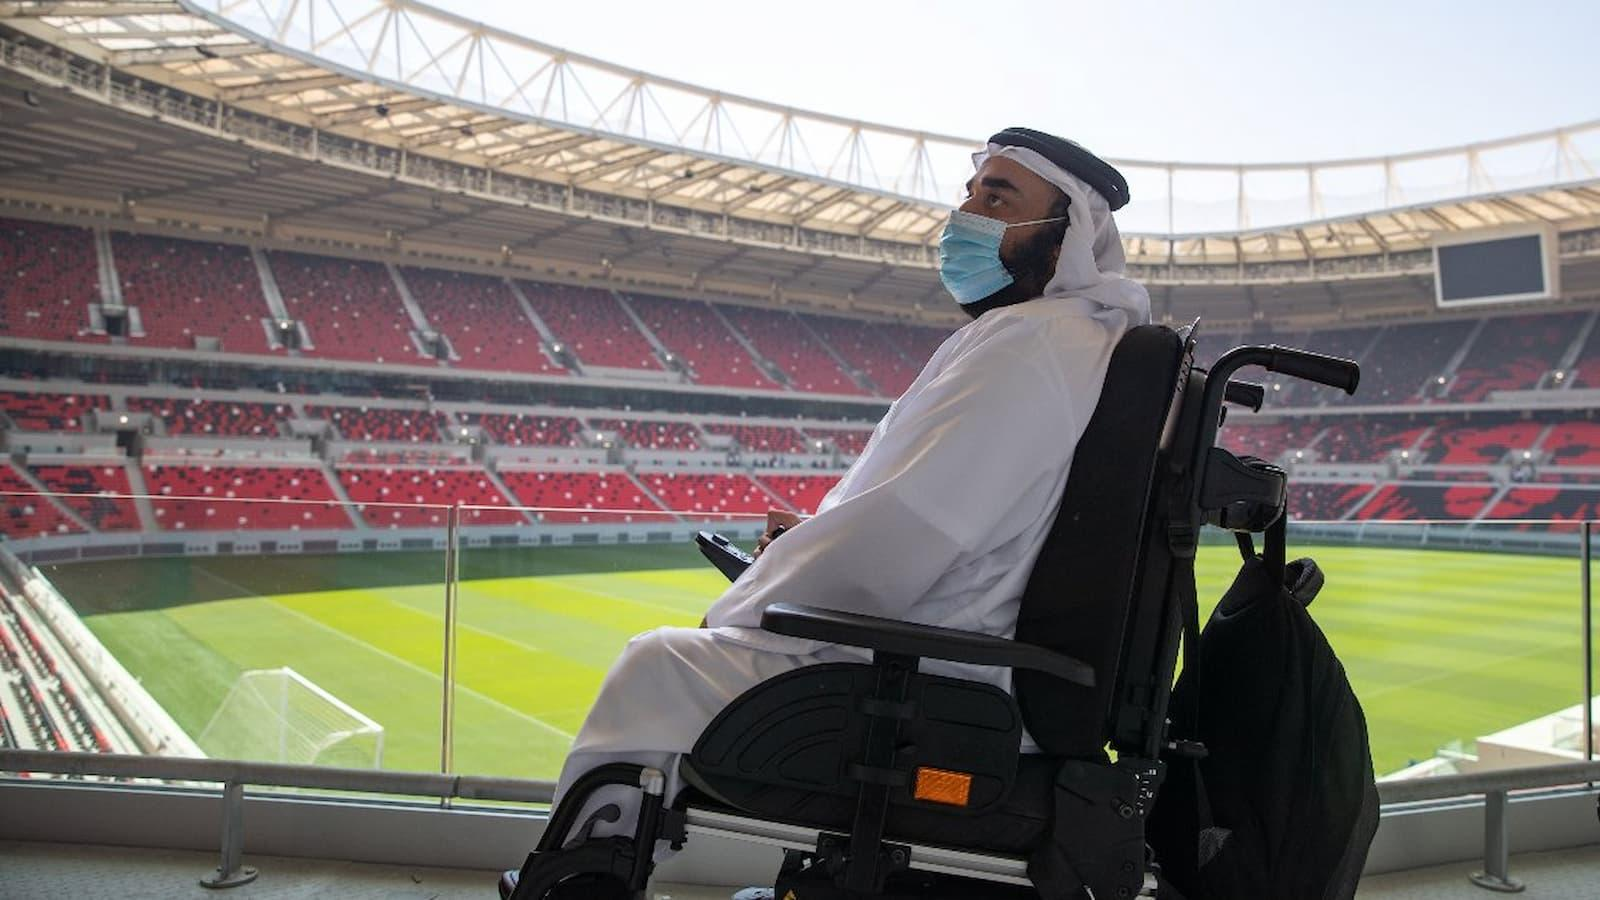 Qatar aims to deliver outstanding FIFA World Cup experience for people with disabilities